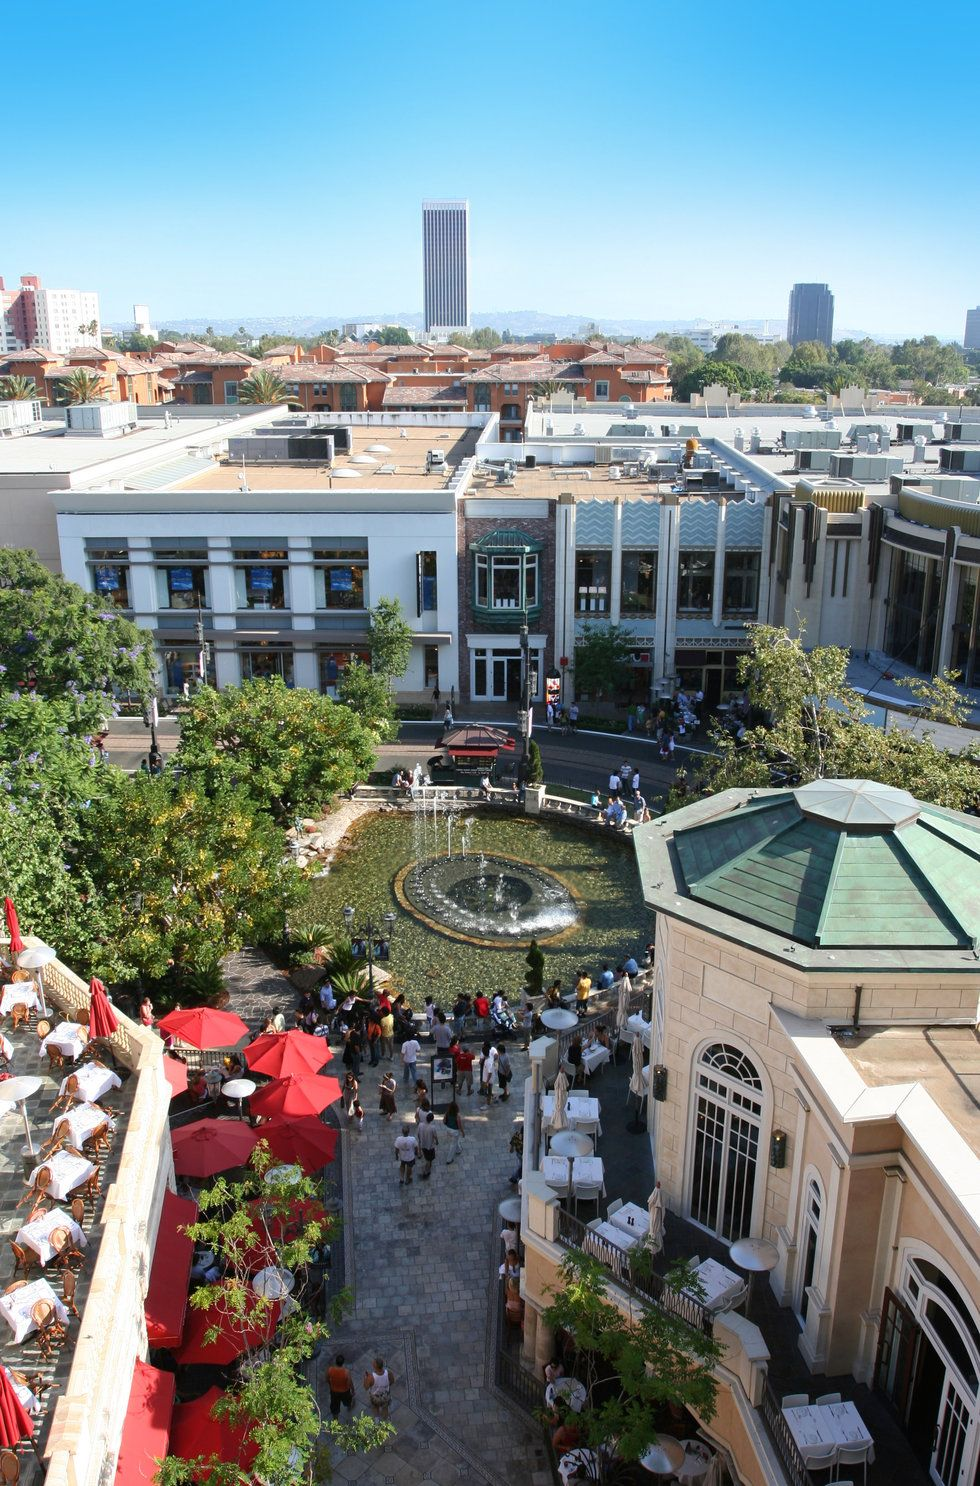 Shopping and eating at the Grove farmers market